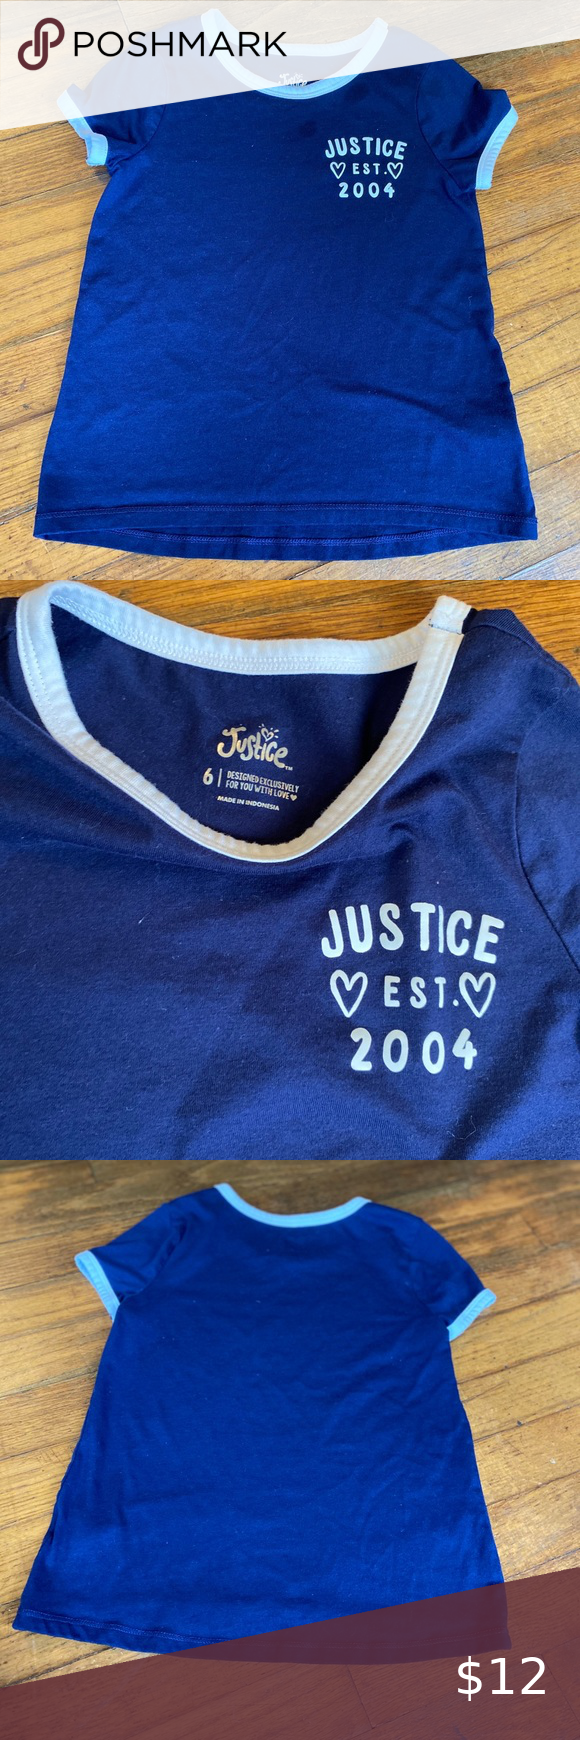 Girls Justice T Shirt Girls Size 6 Justice T Shirts Justice Shirts Tops Tees Short Sleeve Justice Tshirts Justice Shirts Tops